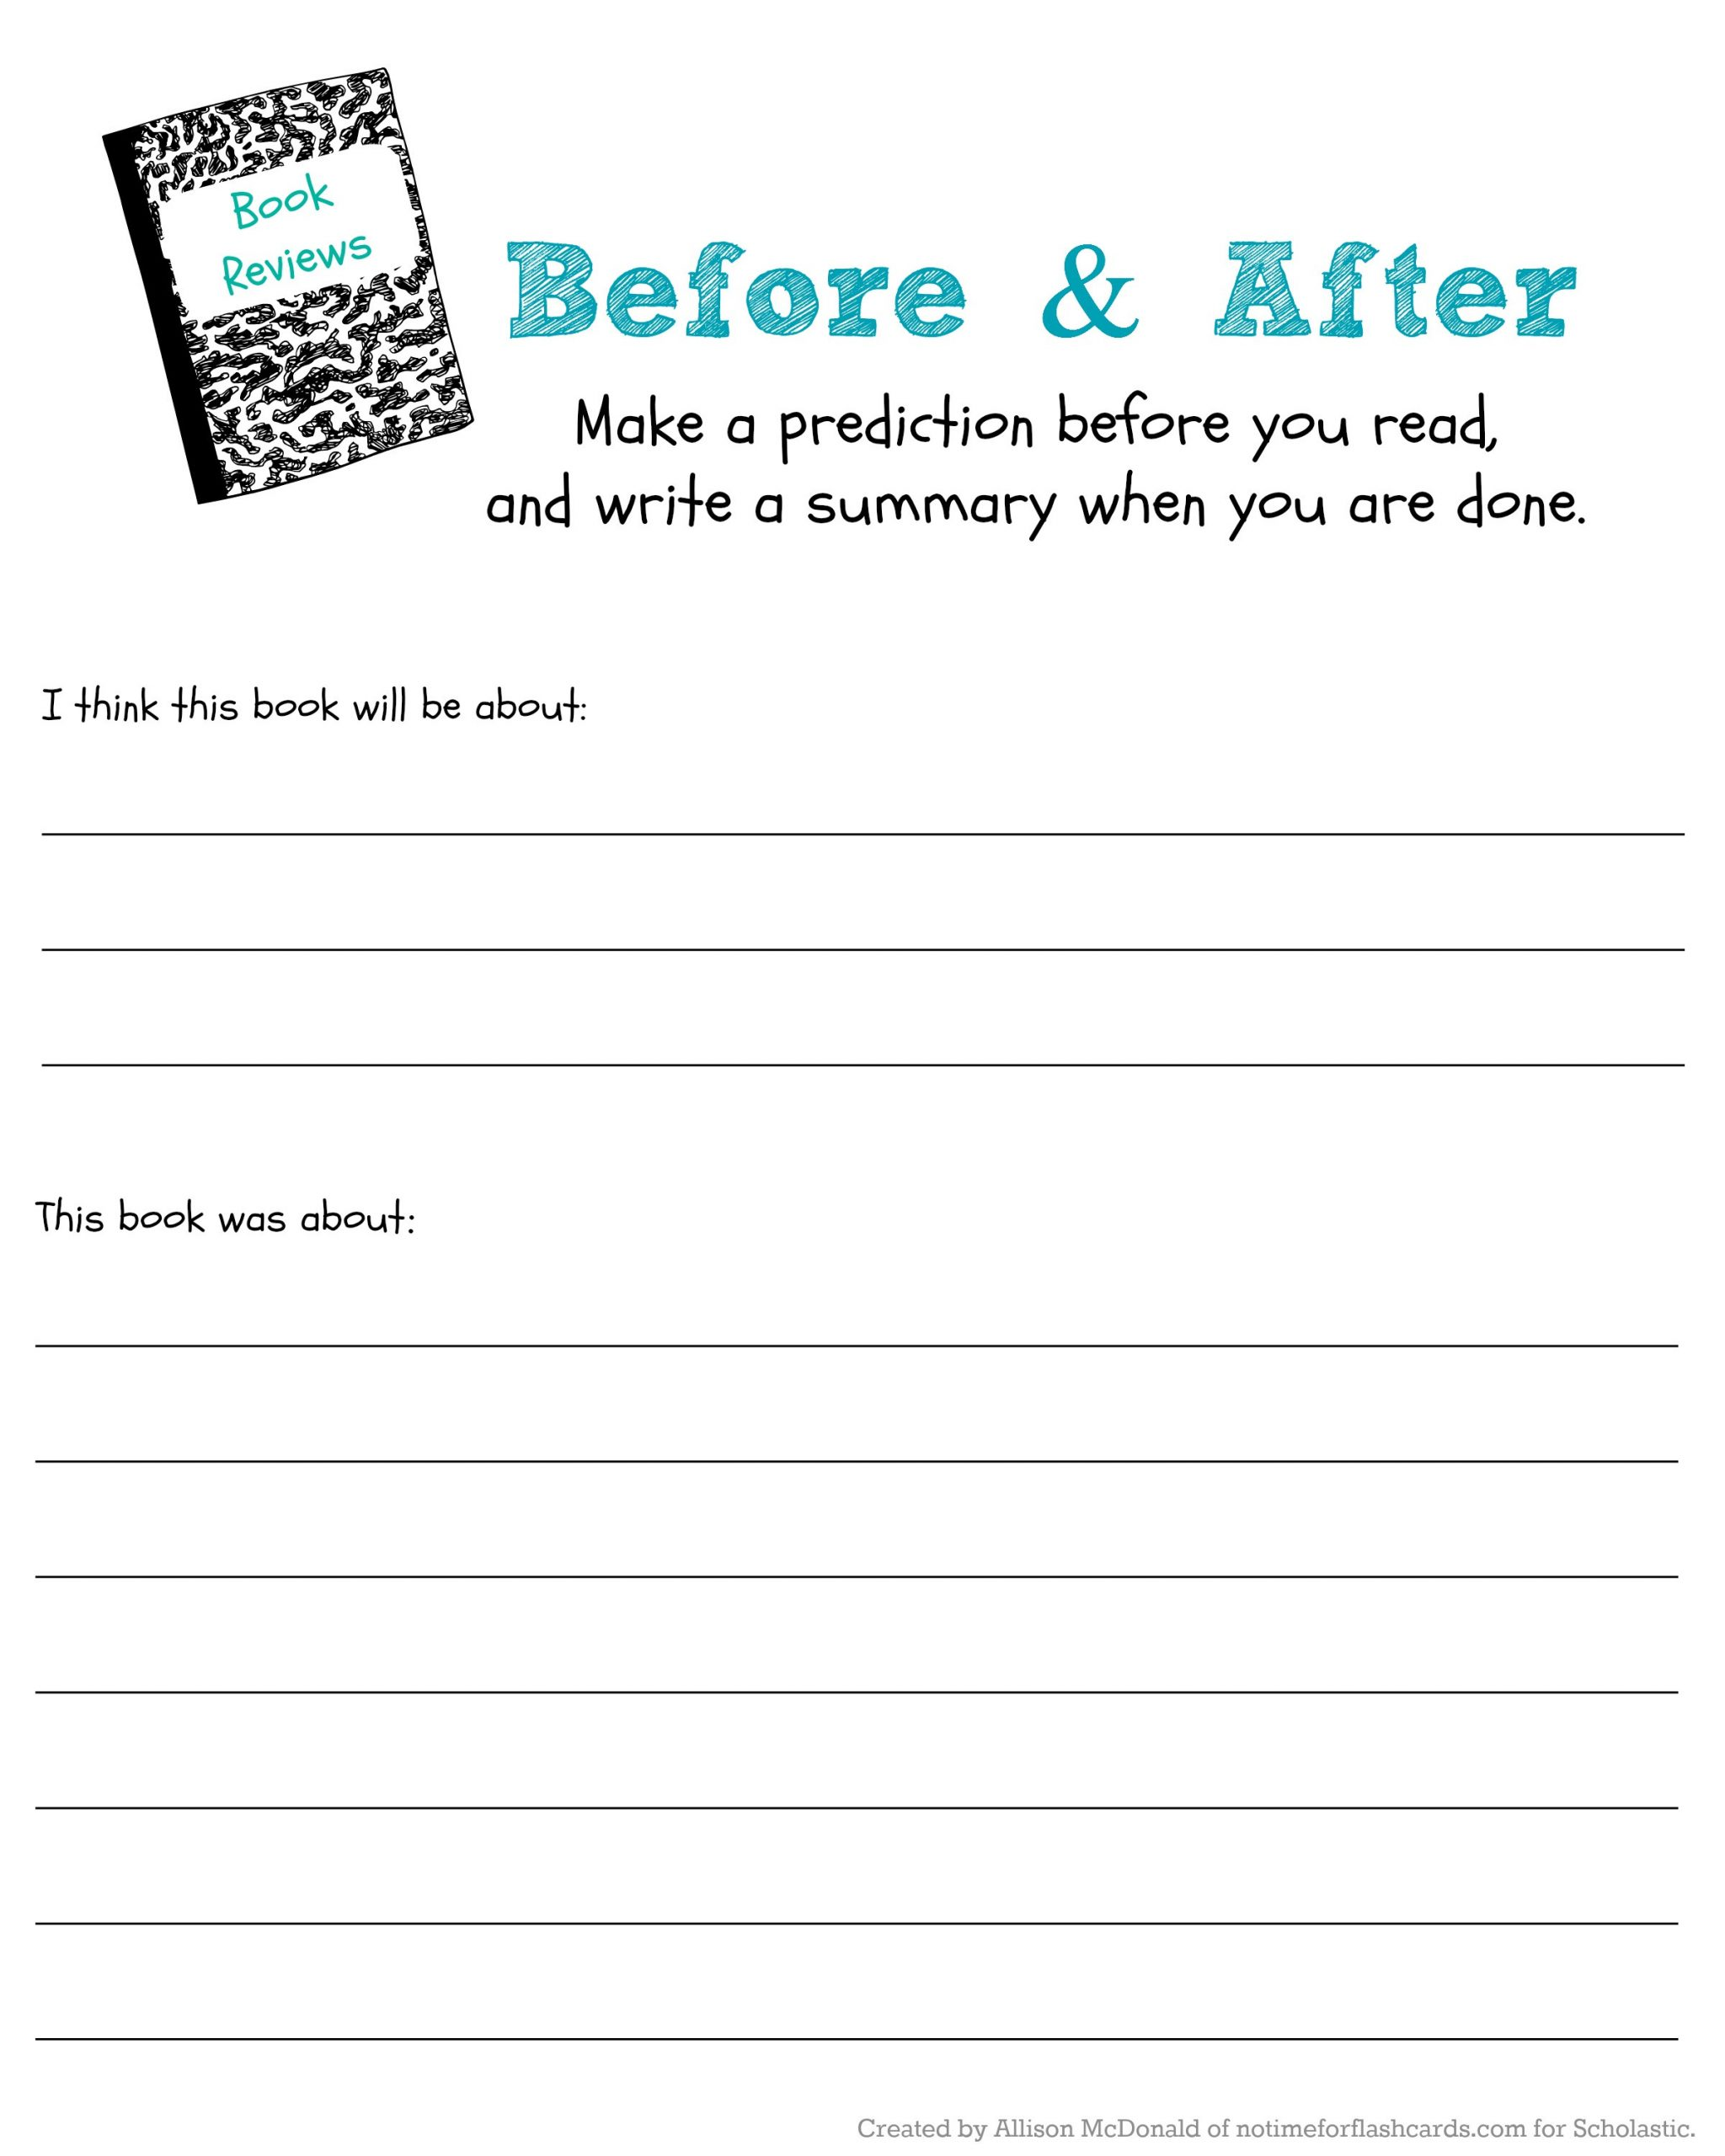 Making Predictions Worksheets 3rd Grade Judge A Book by Its Cover to Predict & Read